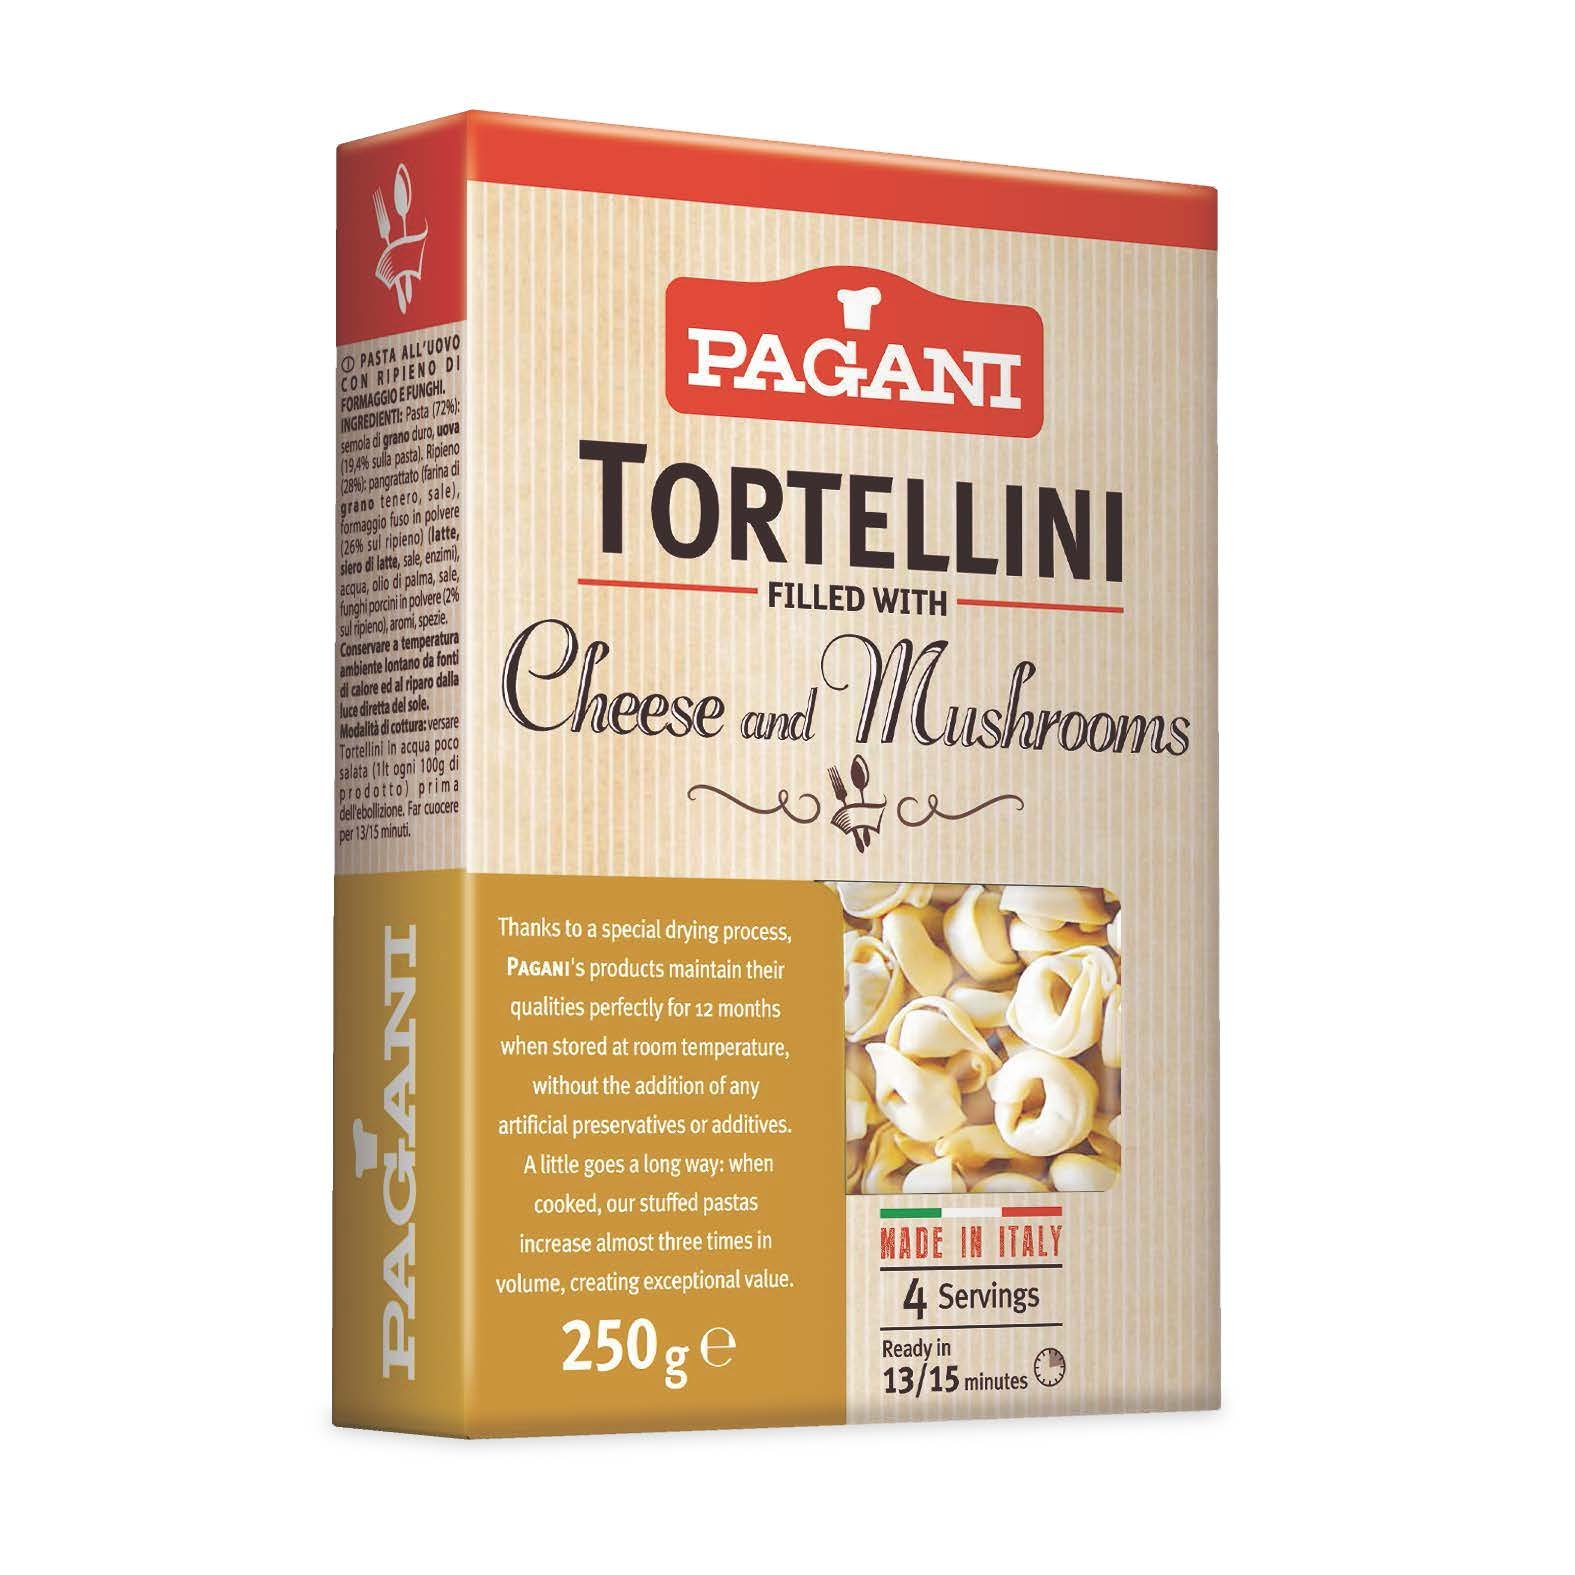 Pagani Tortellini fileld with Cheese & Mushrooms, 8.5 oz (Pack of 8) by Pagani Tortellini